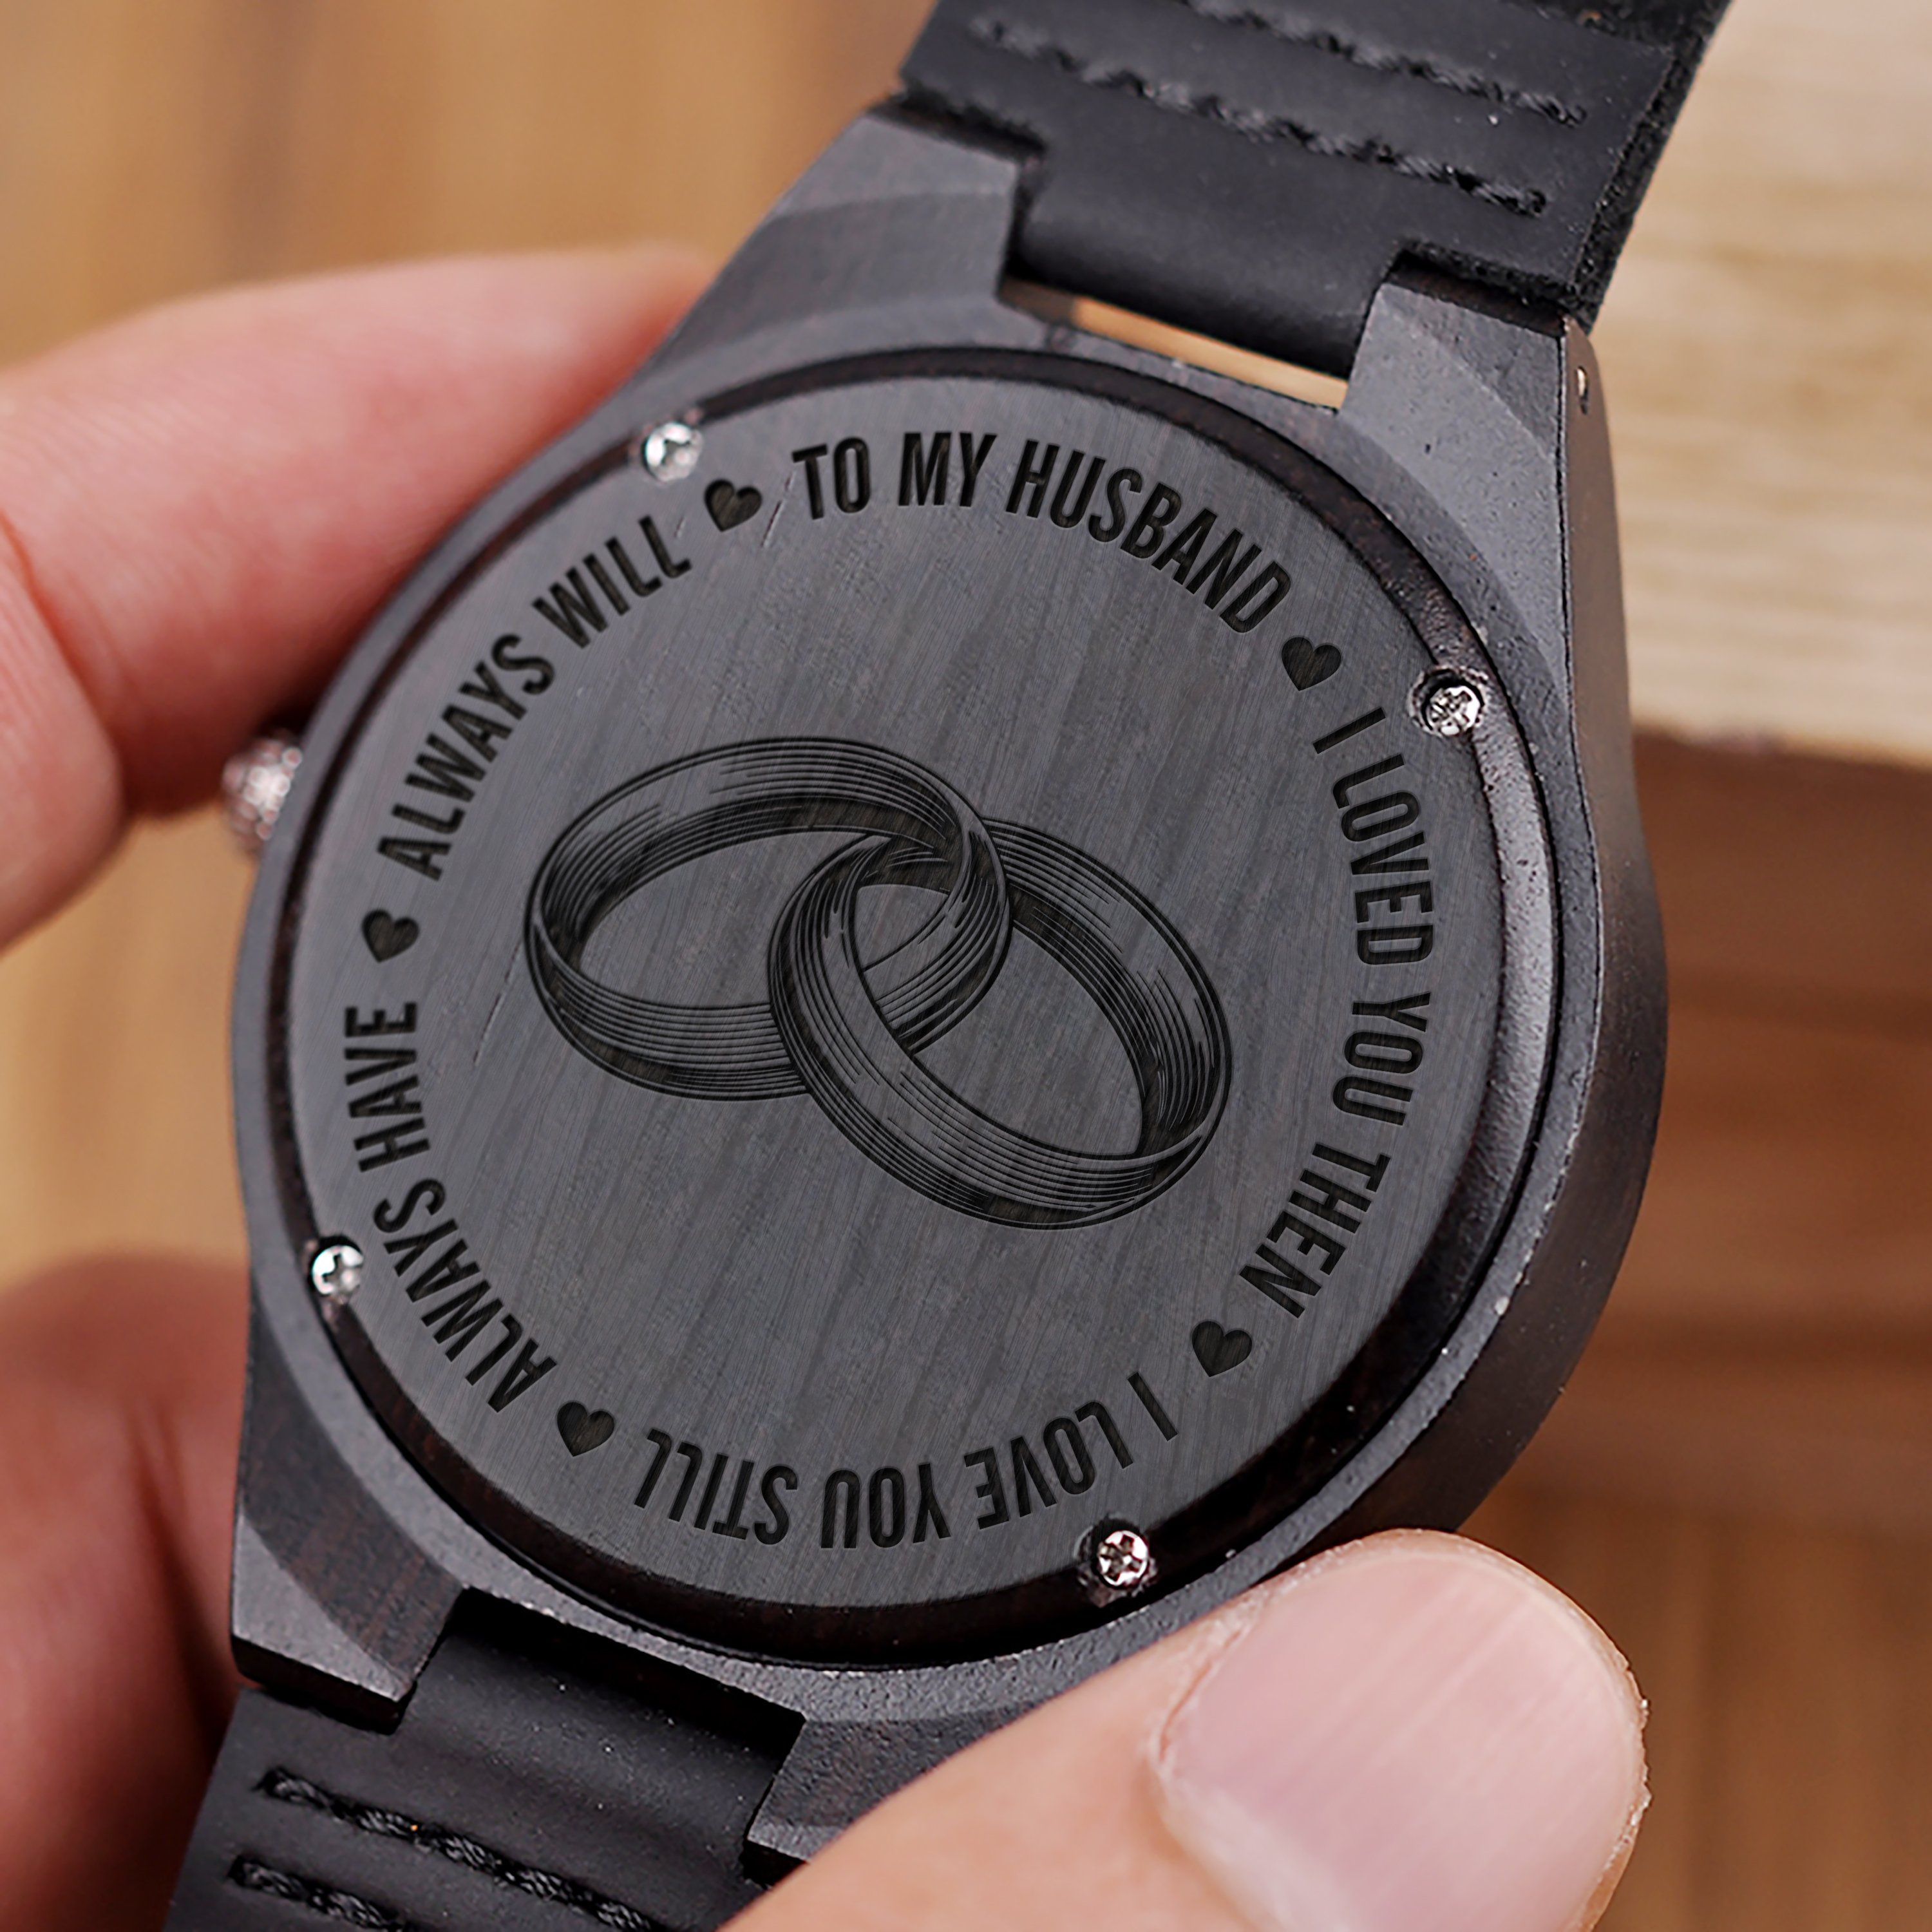 W1480 Always Have Always Will For Husband Engraved Wooden Watch Wooden Watch Engraved Wedding Watch Watch Engraving